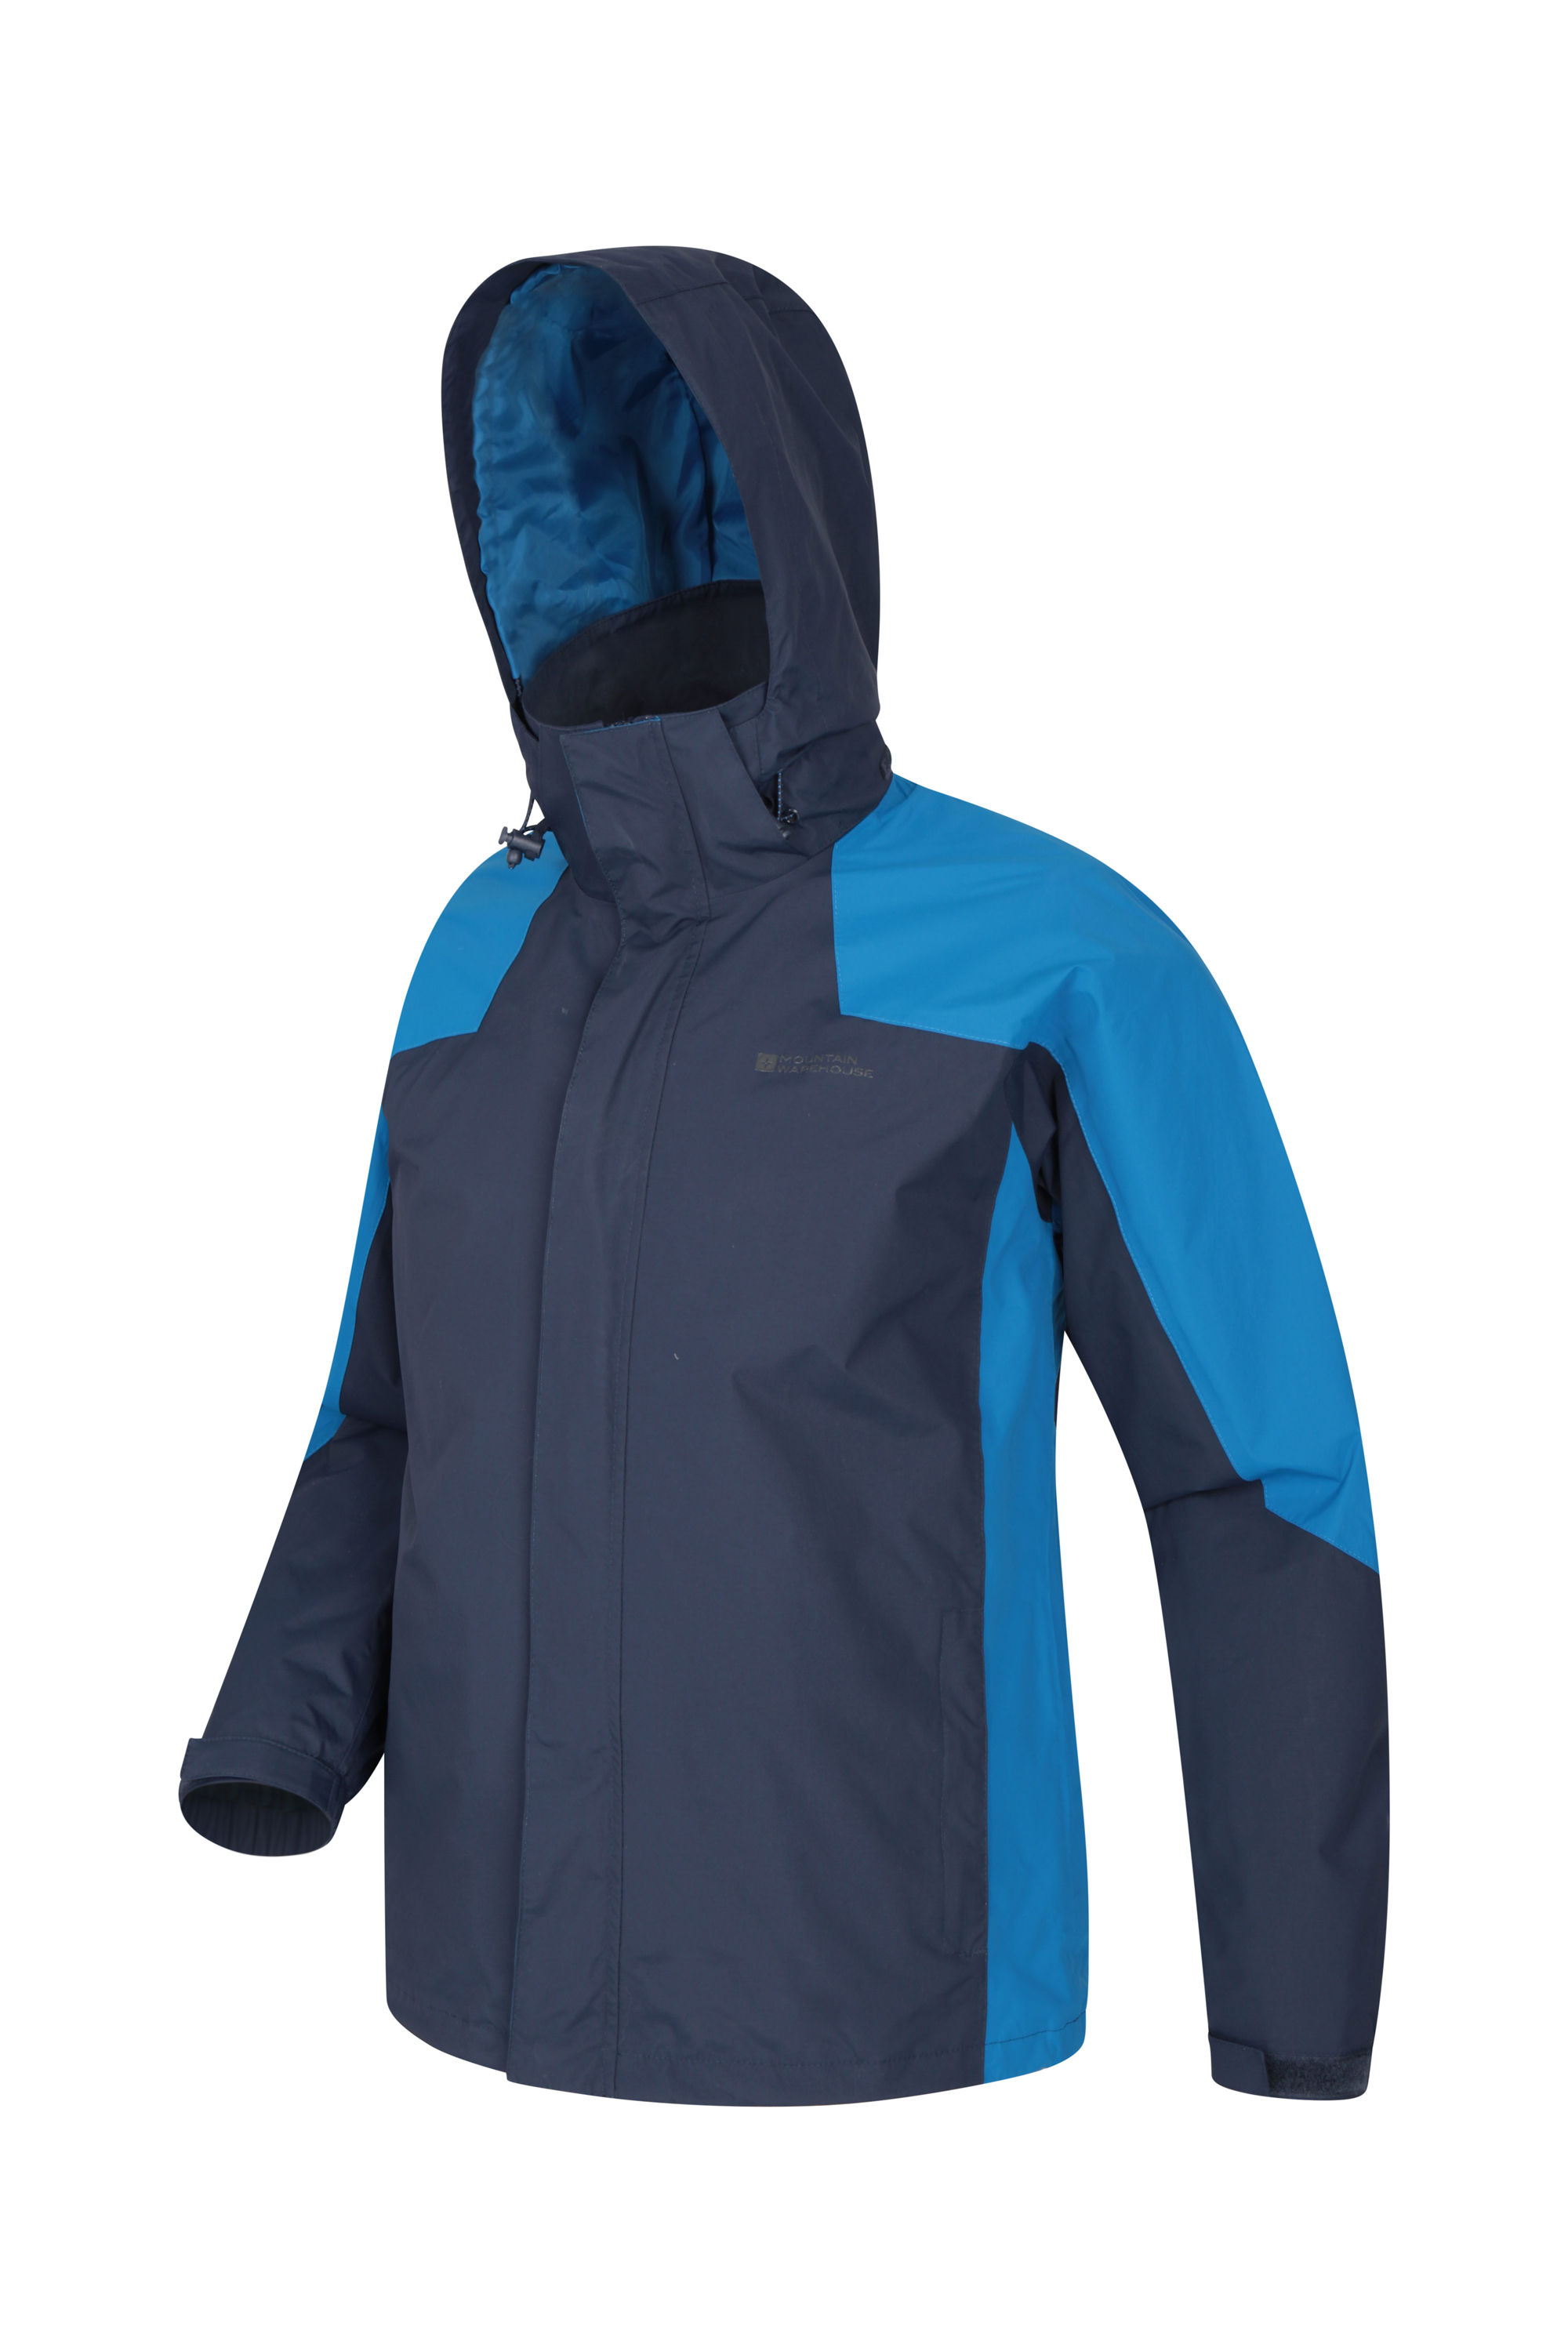 Mountain Warehouse Gust Waterproof Jacket - Review